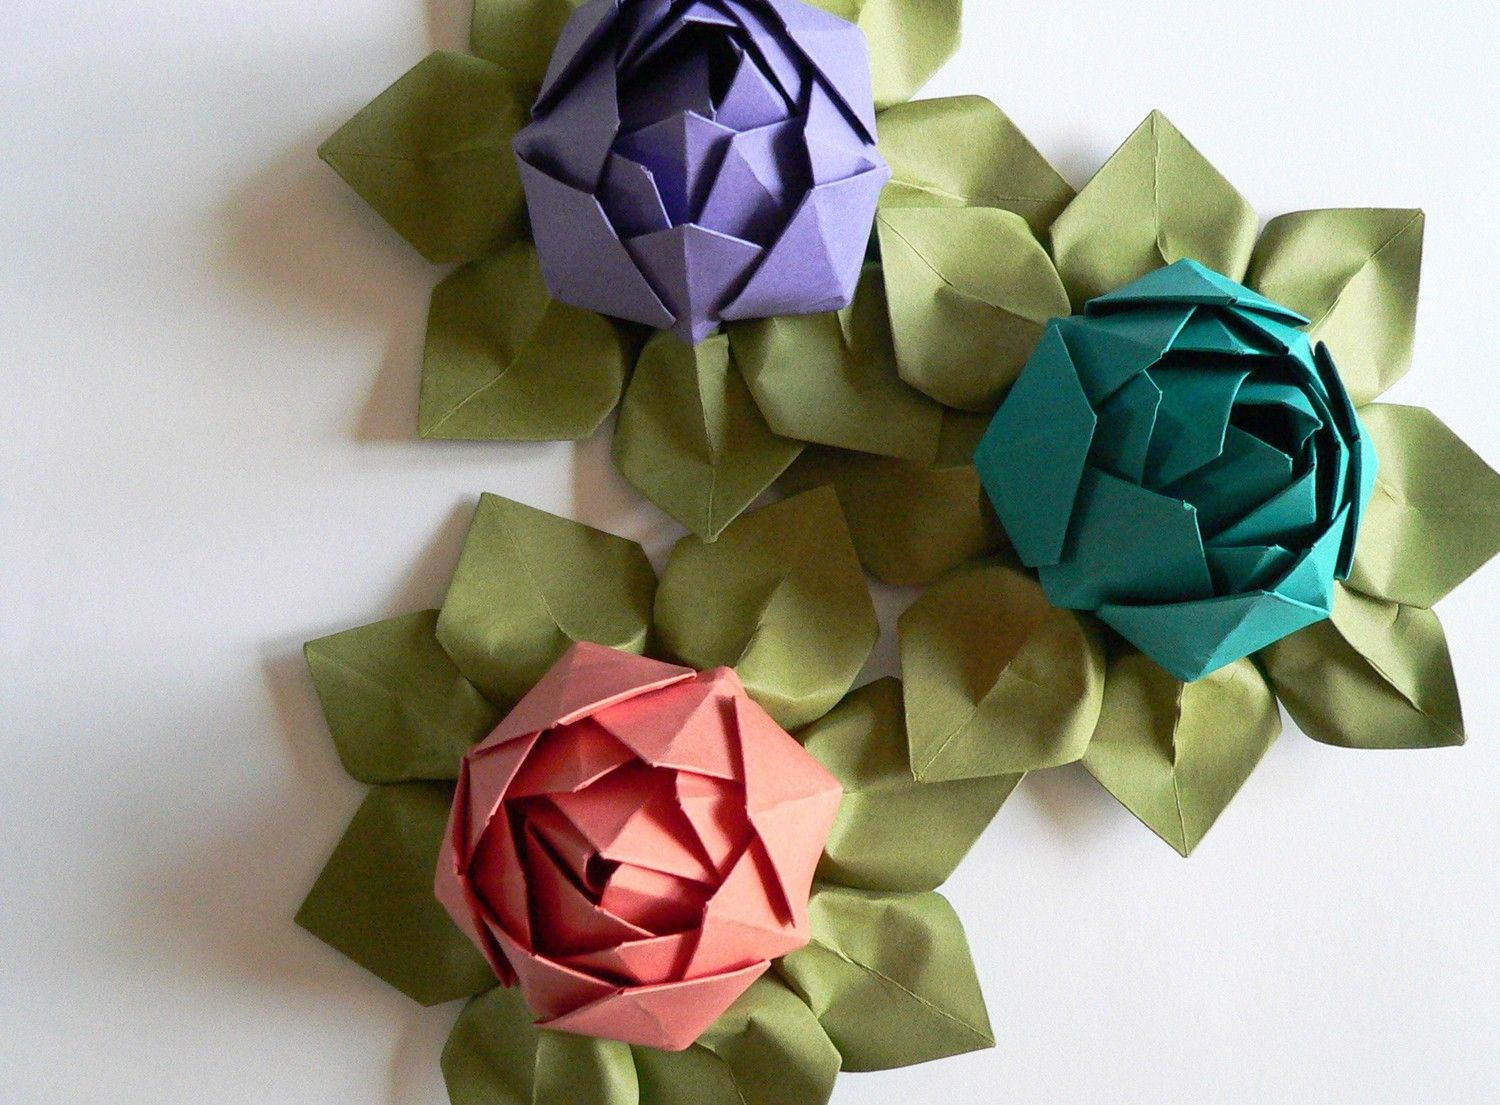 Paper flower handmade origami lotus flower gift table paper flower handmade origami lotus flower gift table decoration wedding favor izmirmasajfo Images